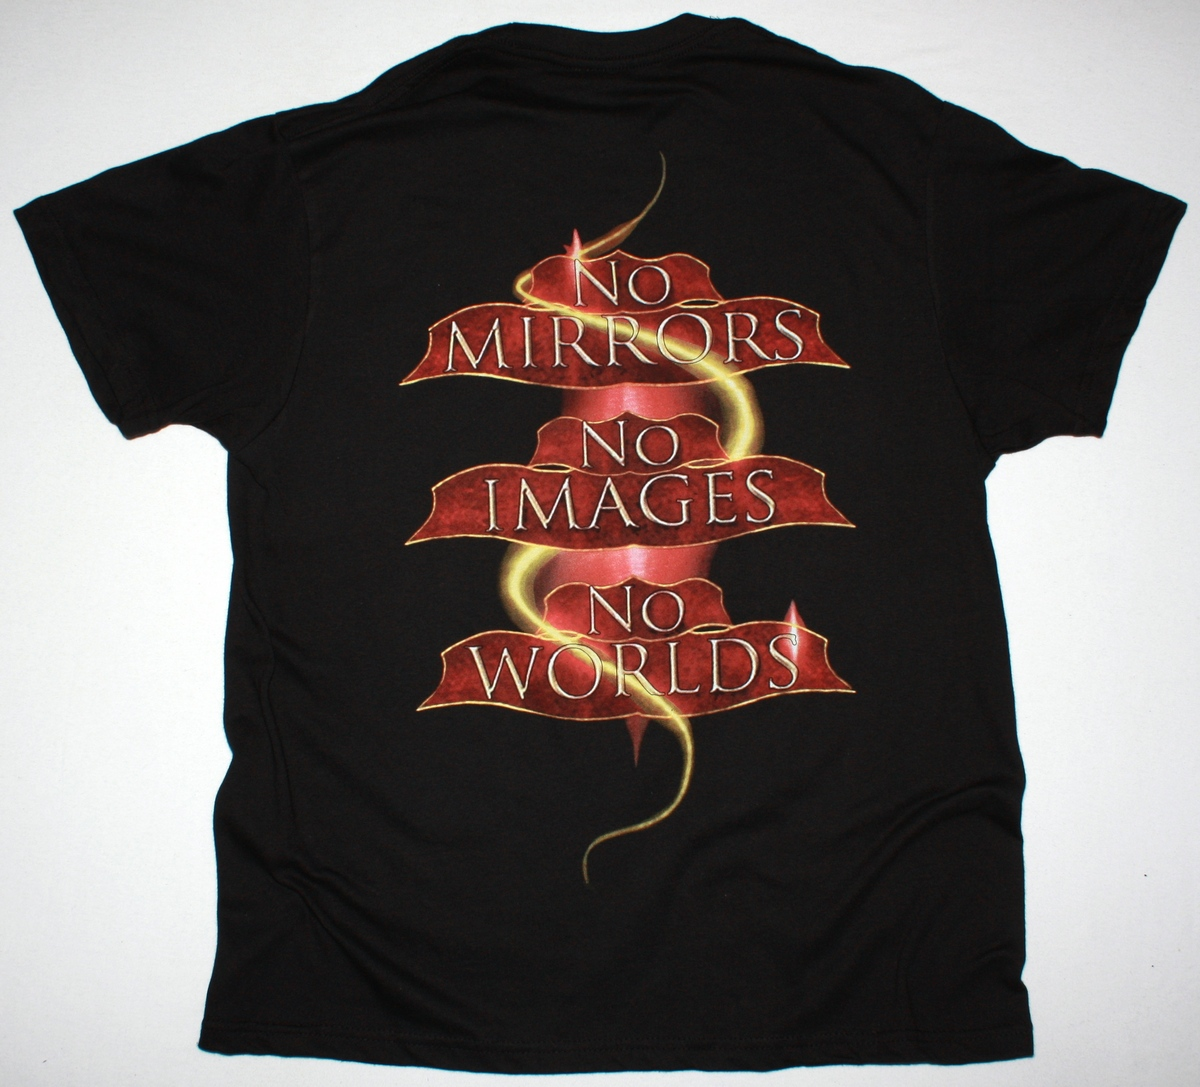 BLIND GUARDIAN BEYOND THE RED MIRROR 2015 NEW BLACK T-SHIRT